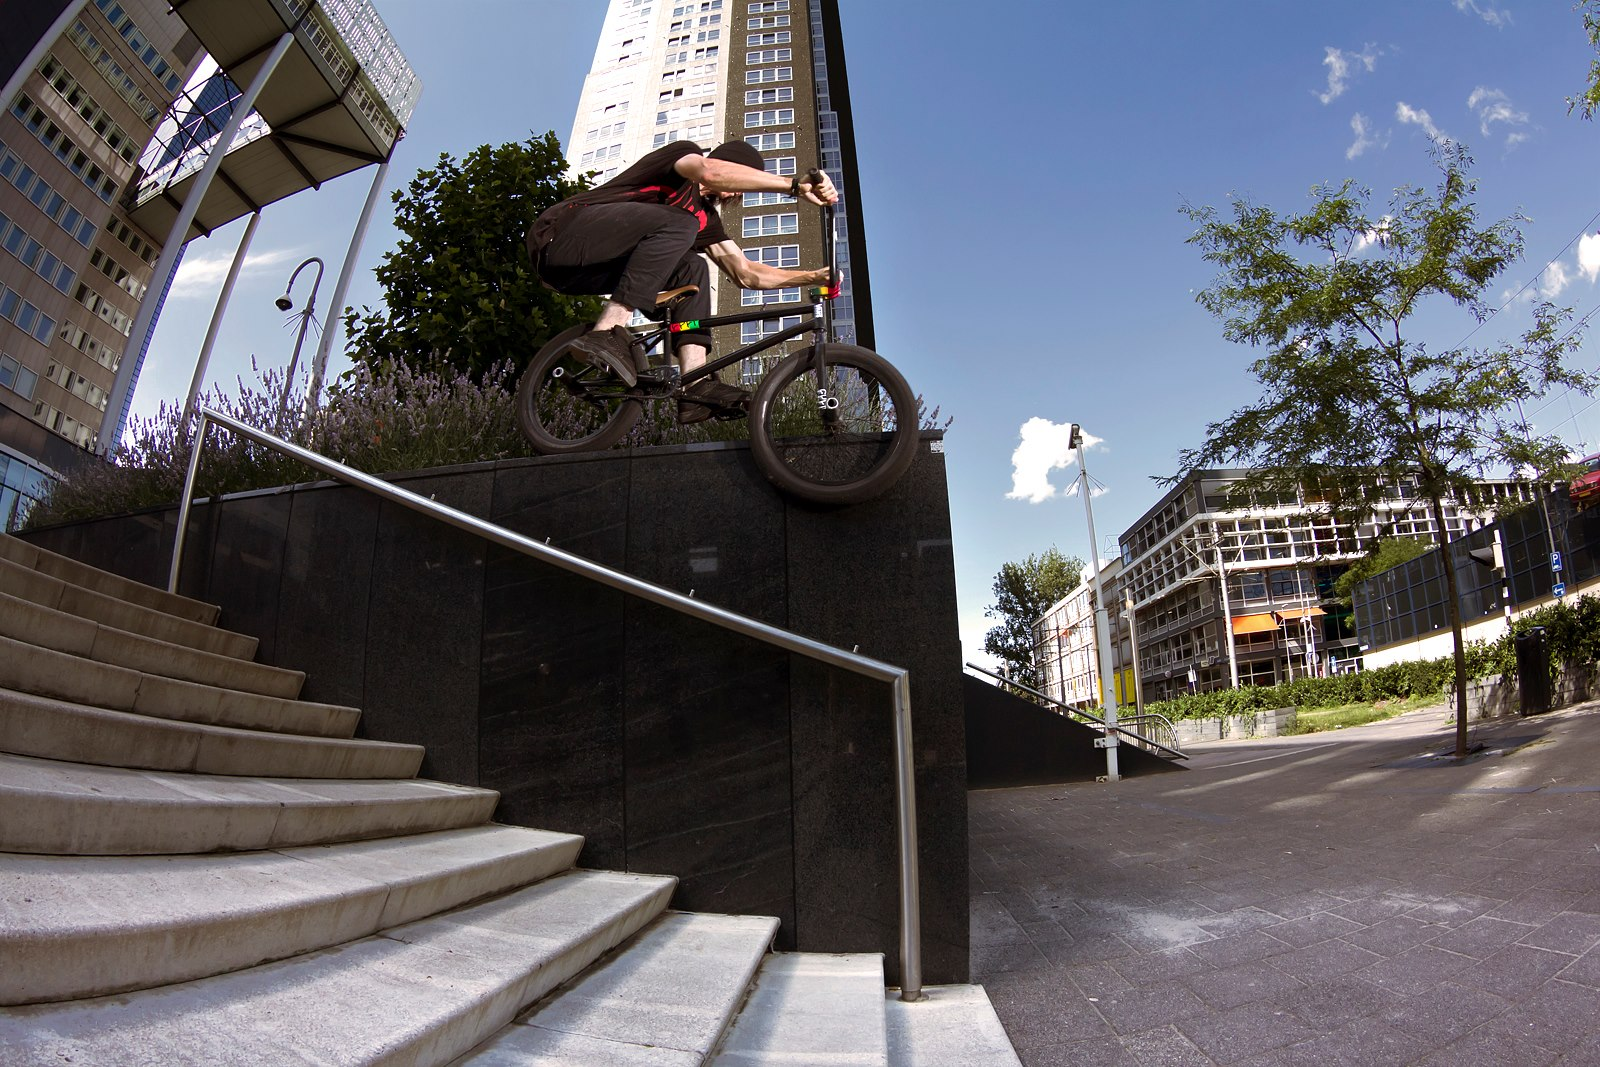 BMX rad photos from Aaron Zwaal which he shot while in Rotterdam